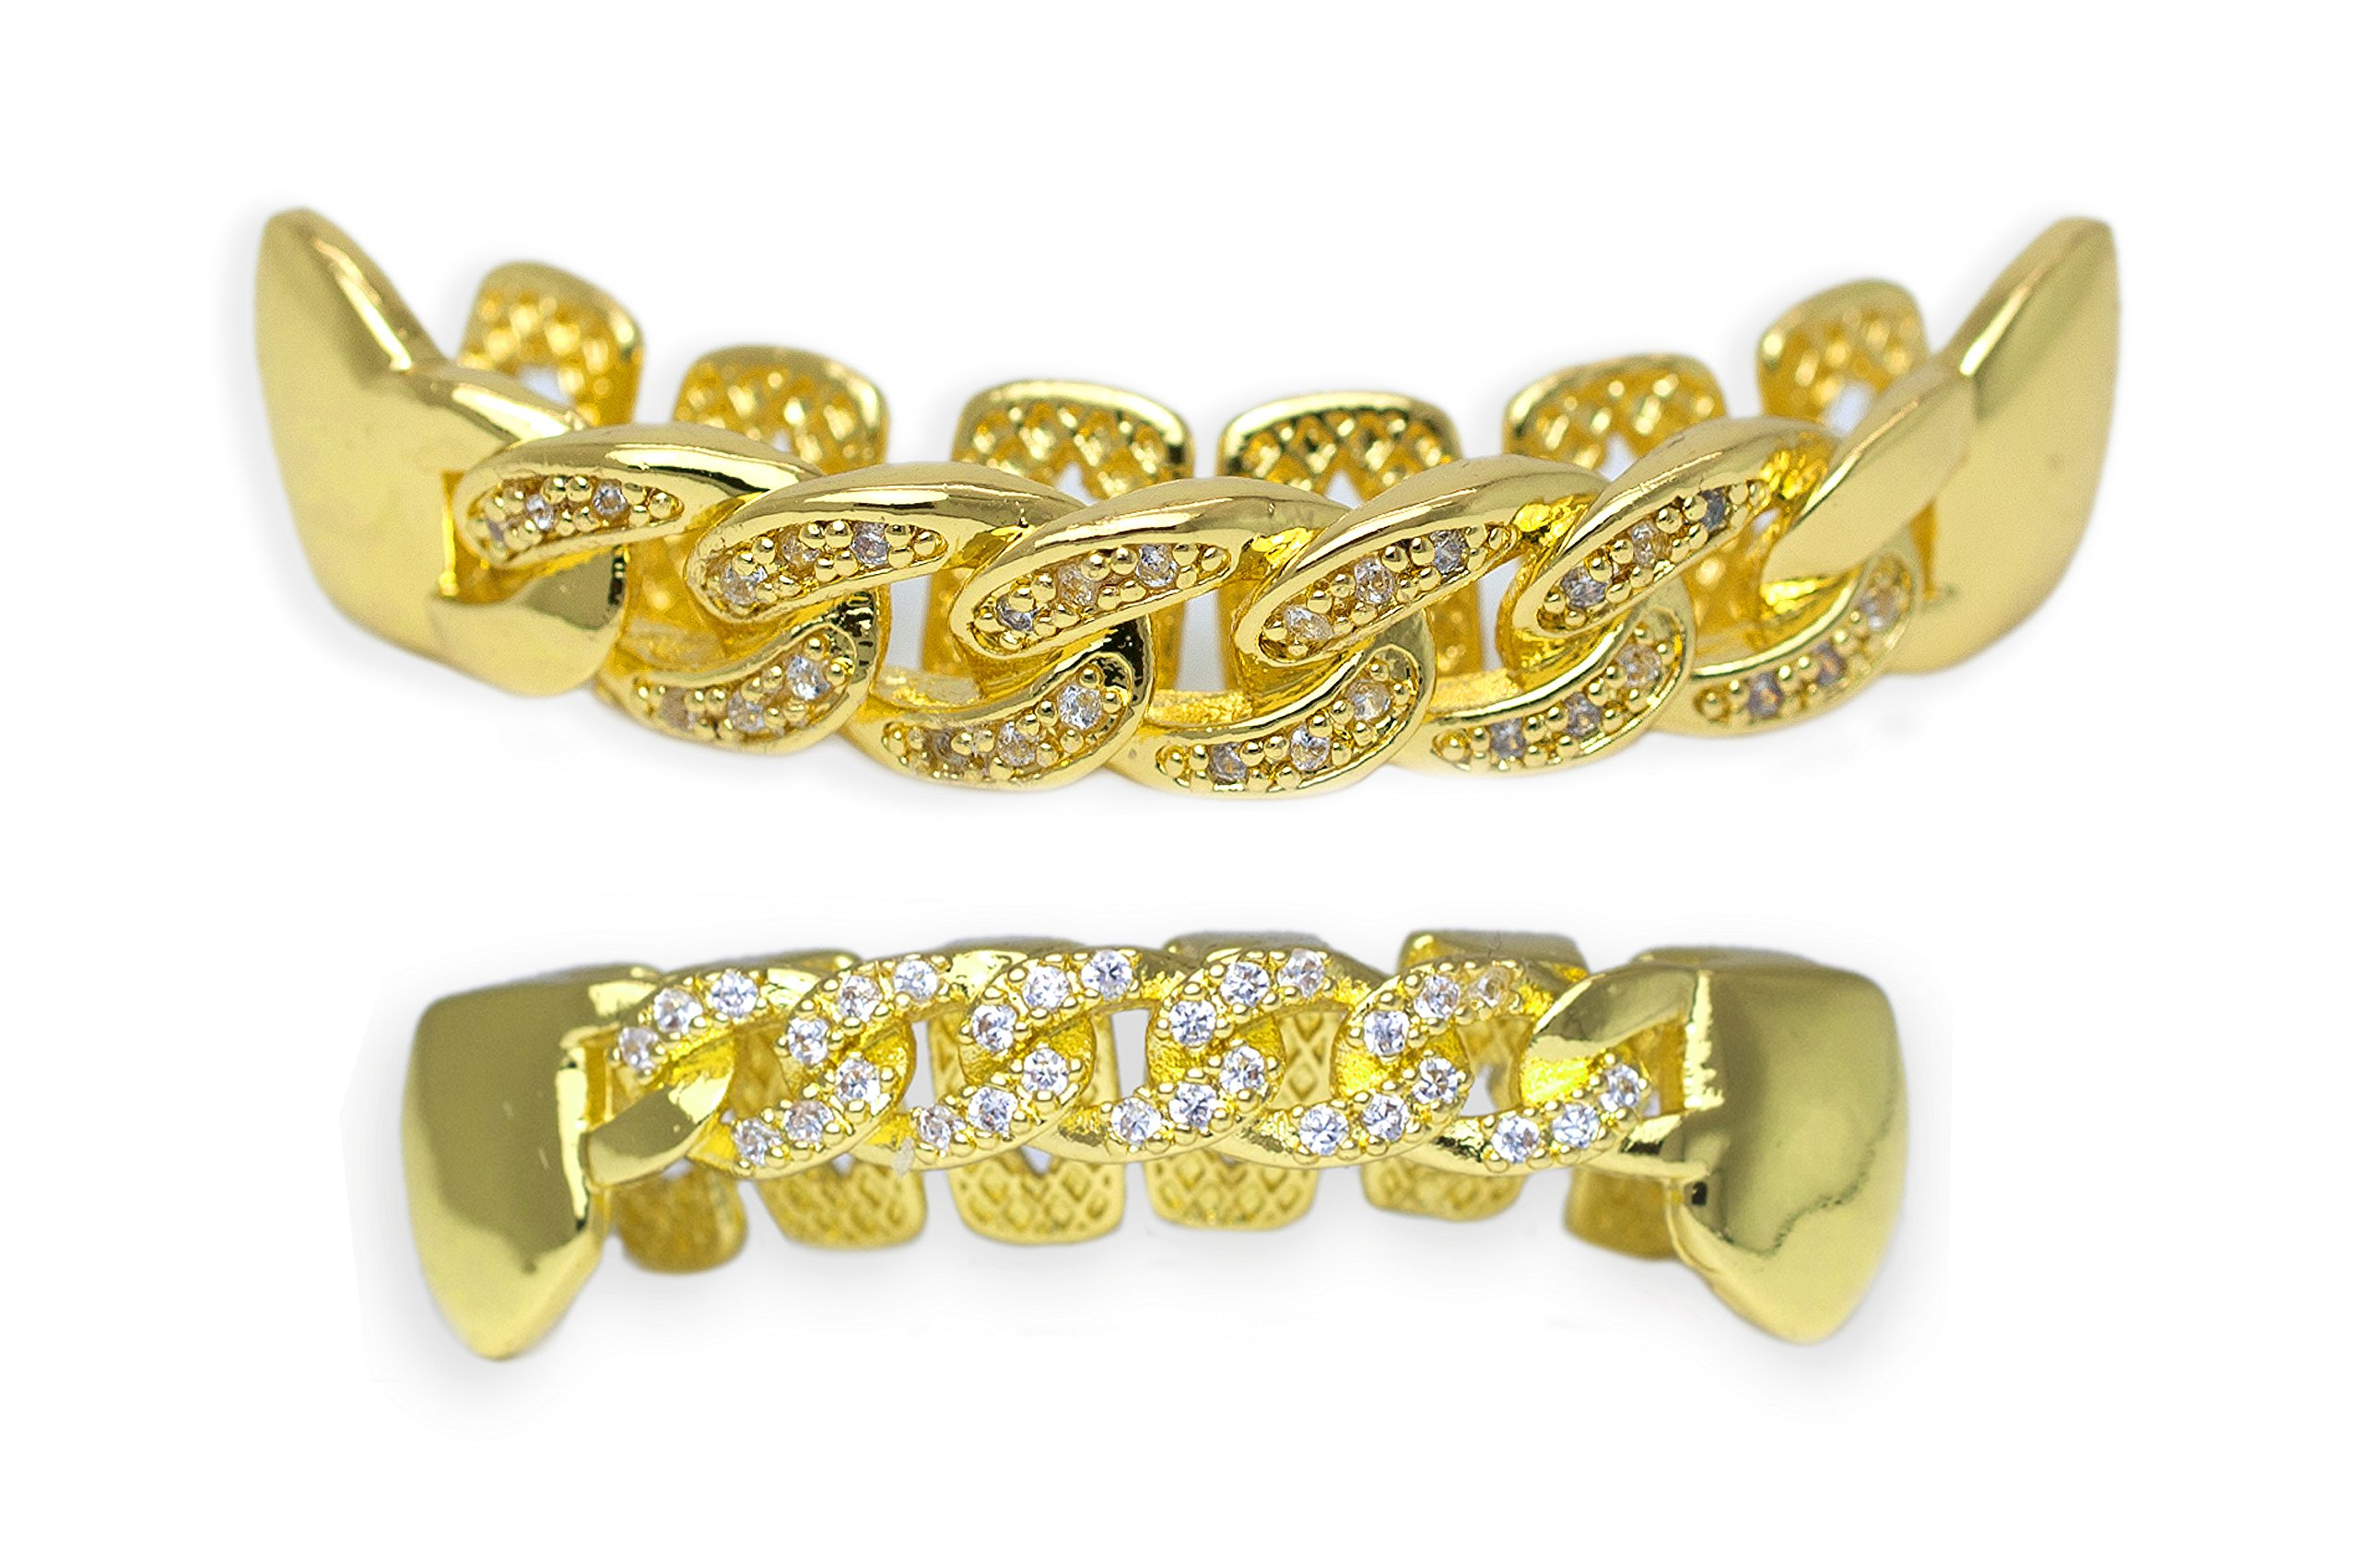 Yellow Gold-Tone Iced Out Hip Hop Bling Open Face Cubic Zirconia (CZ) Cuban Link Removable Grill Grillz Combo Set with Mold Bar by iRockBling (Image #1)